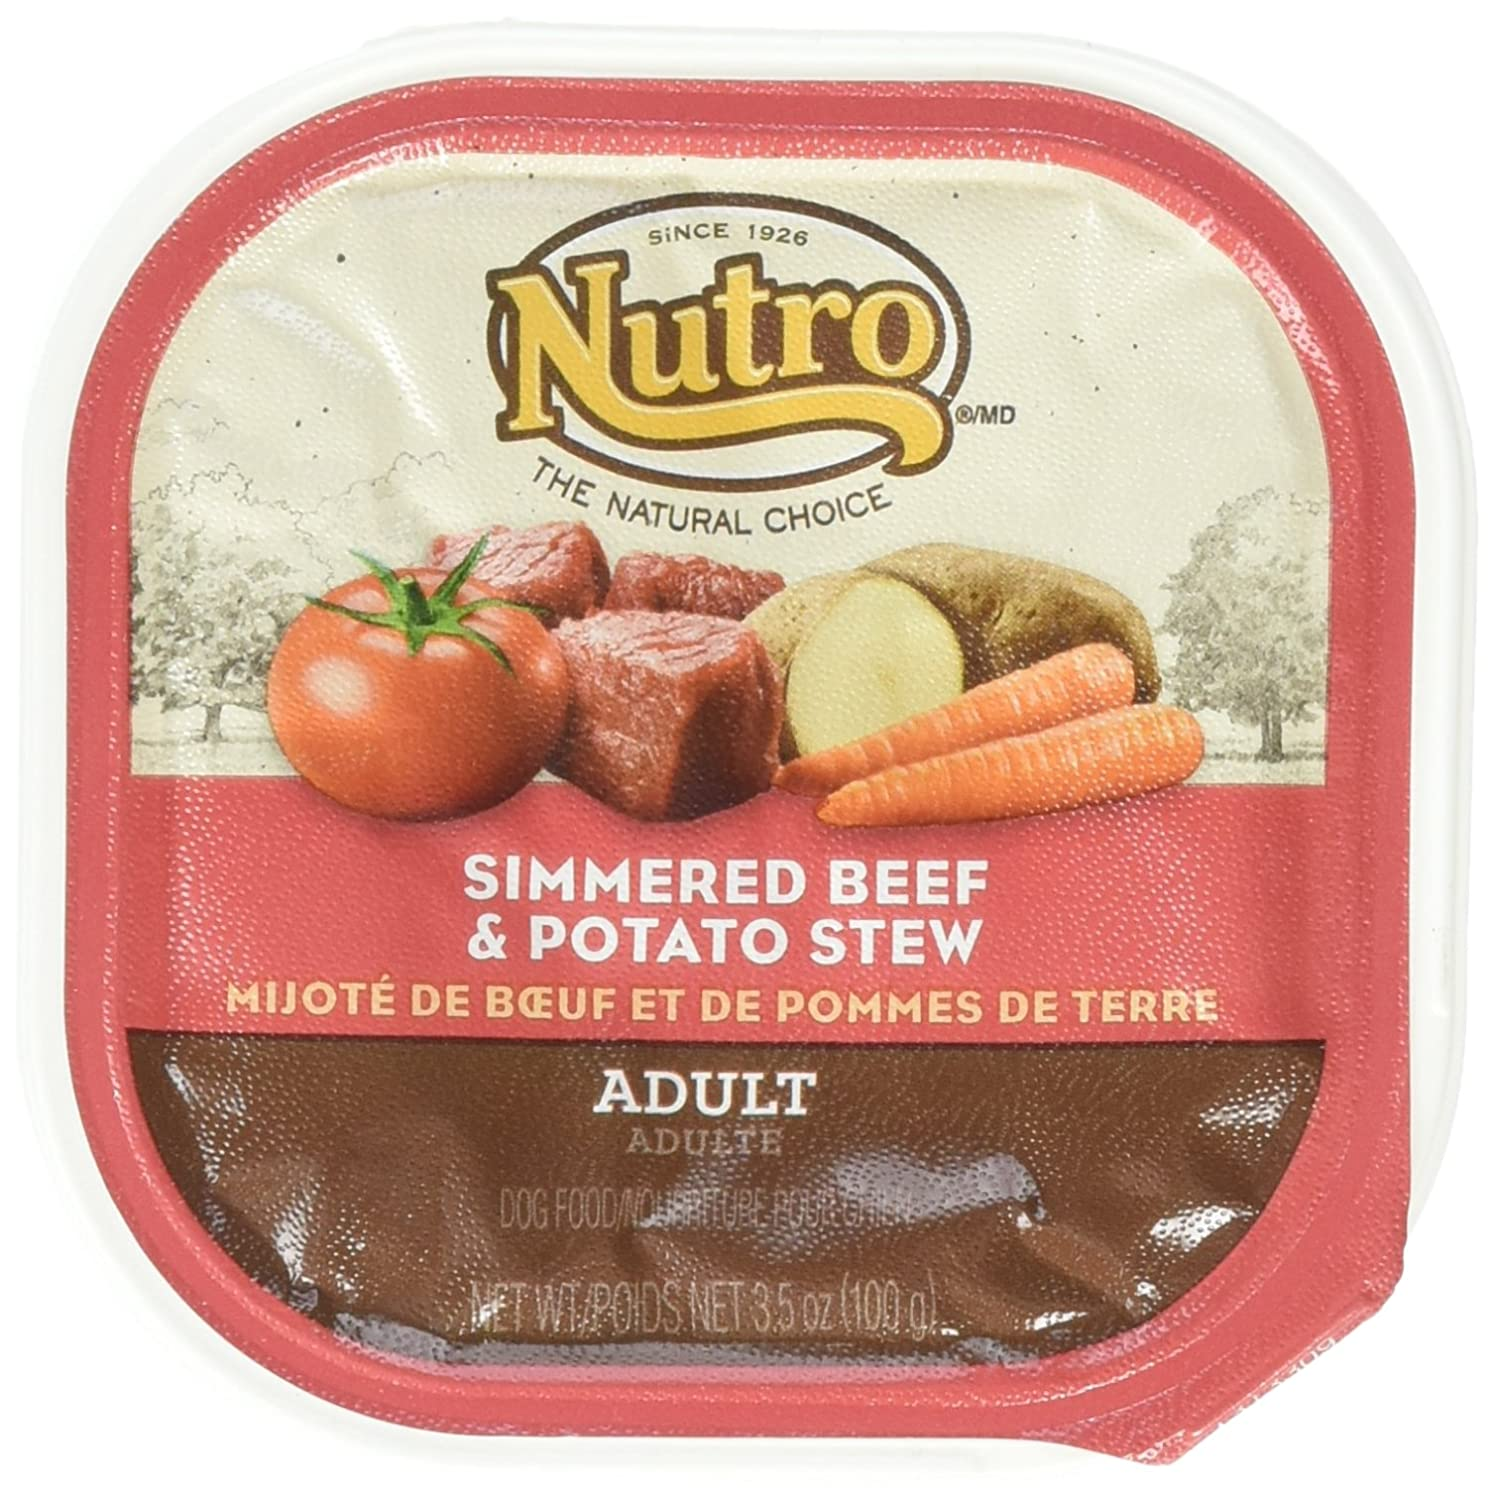 Nutro Wet Dog Food, Simmered Beef and Potato Stew Caned Dog Food, (24) 3.5 Oz Trays